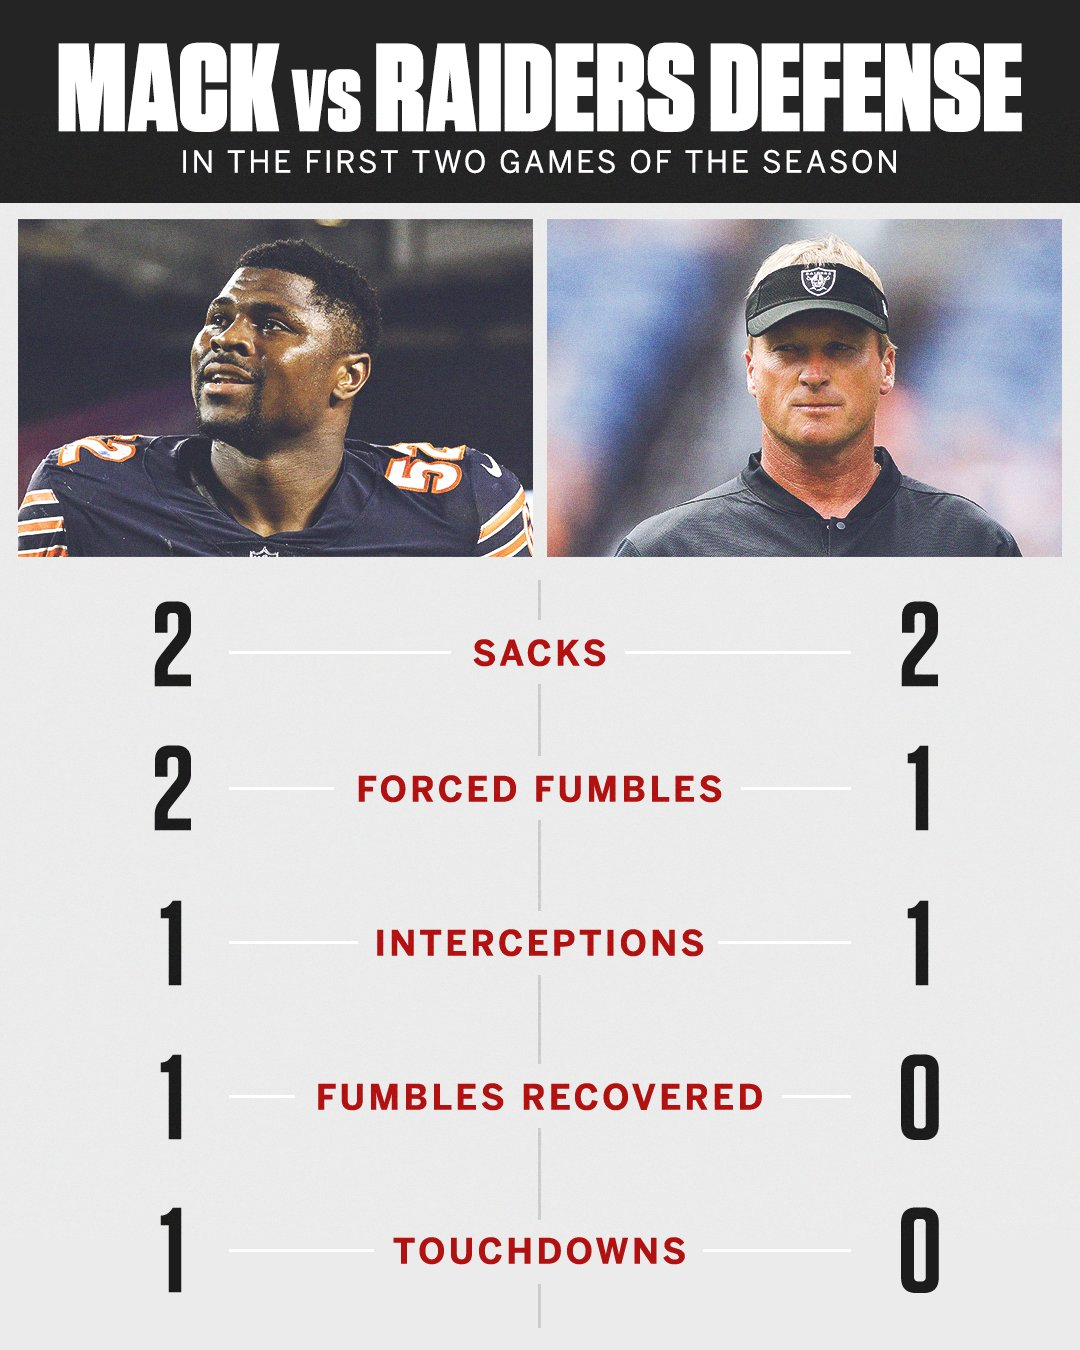 After two games, Khalil Mack has produced better numbers than the entire Raiders defense. https://t.co/SxHQXIzZvQ